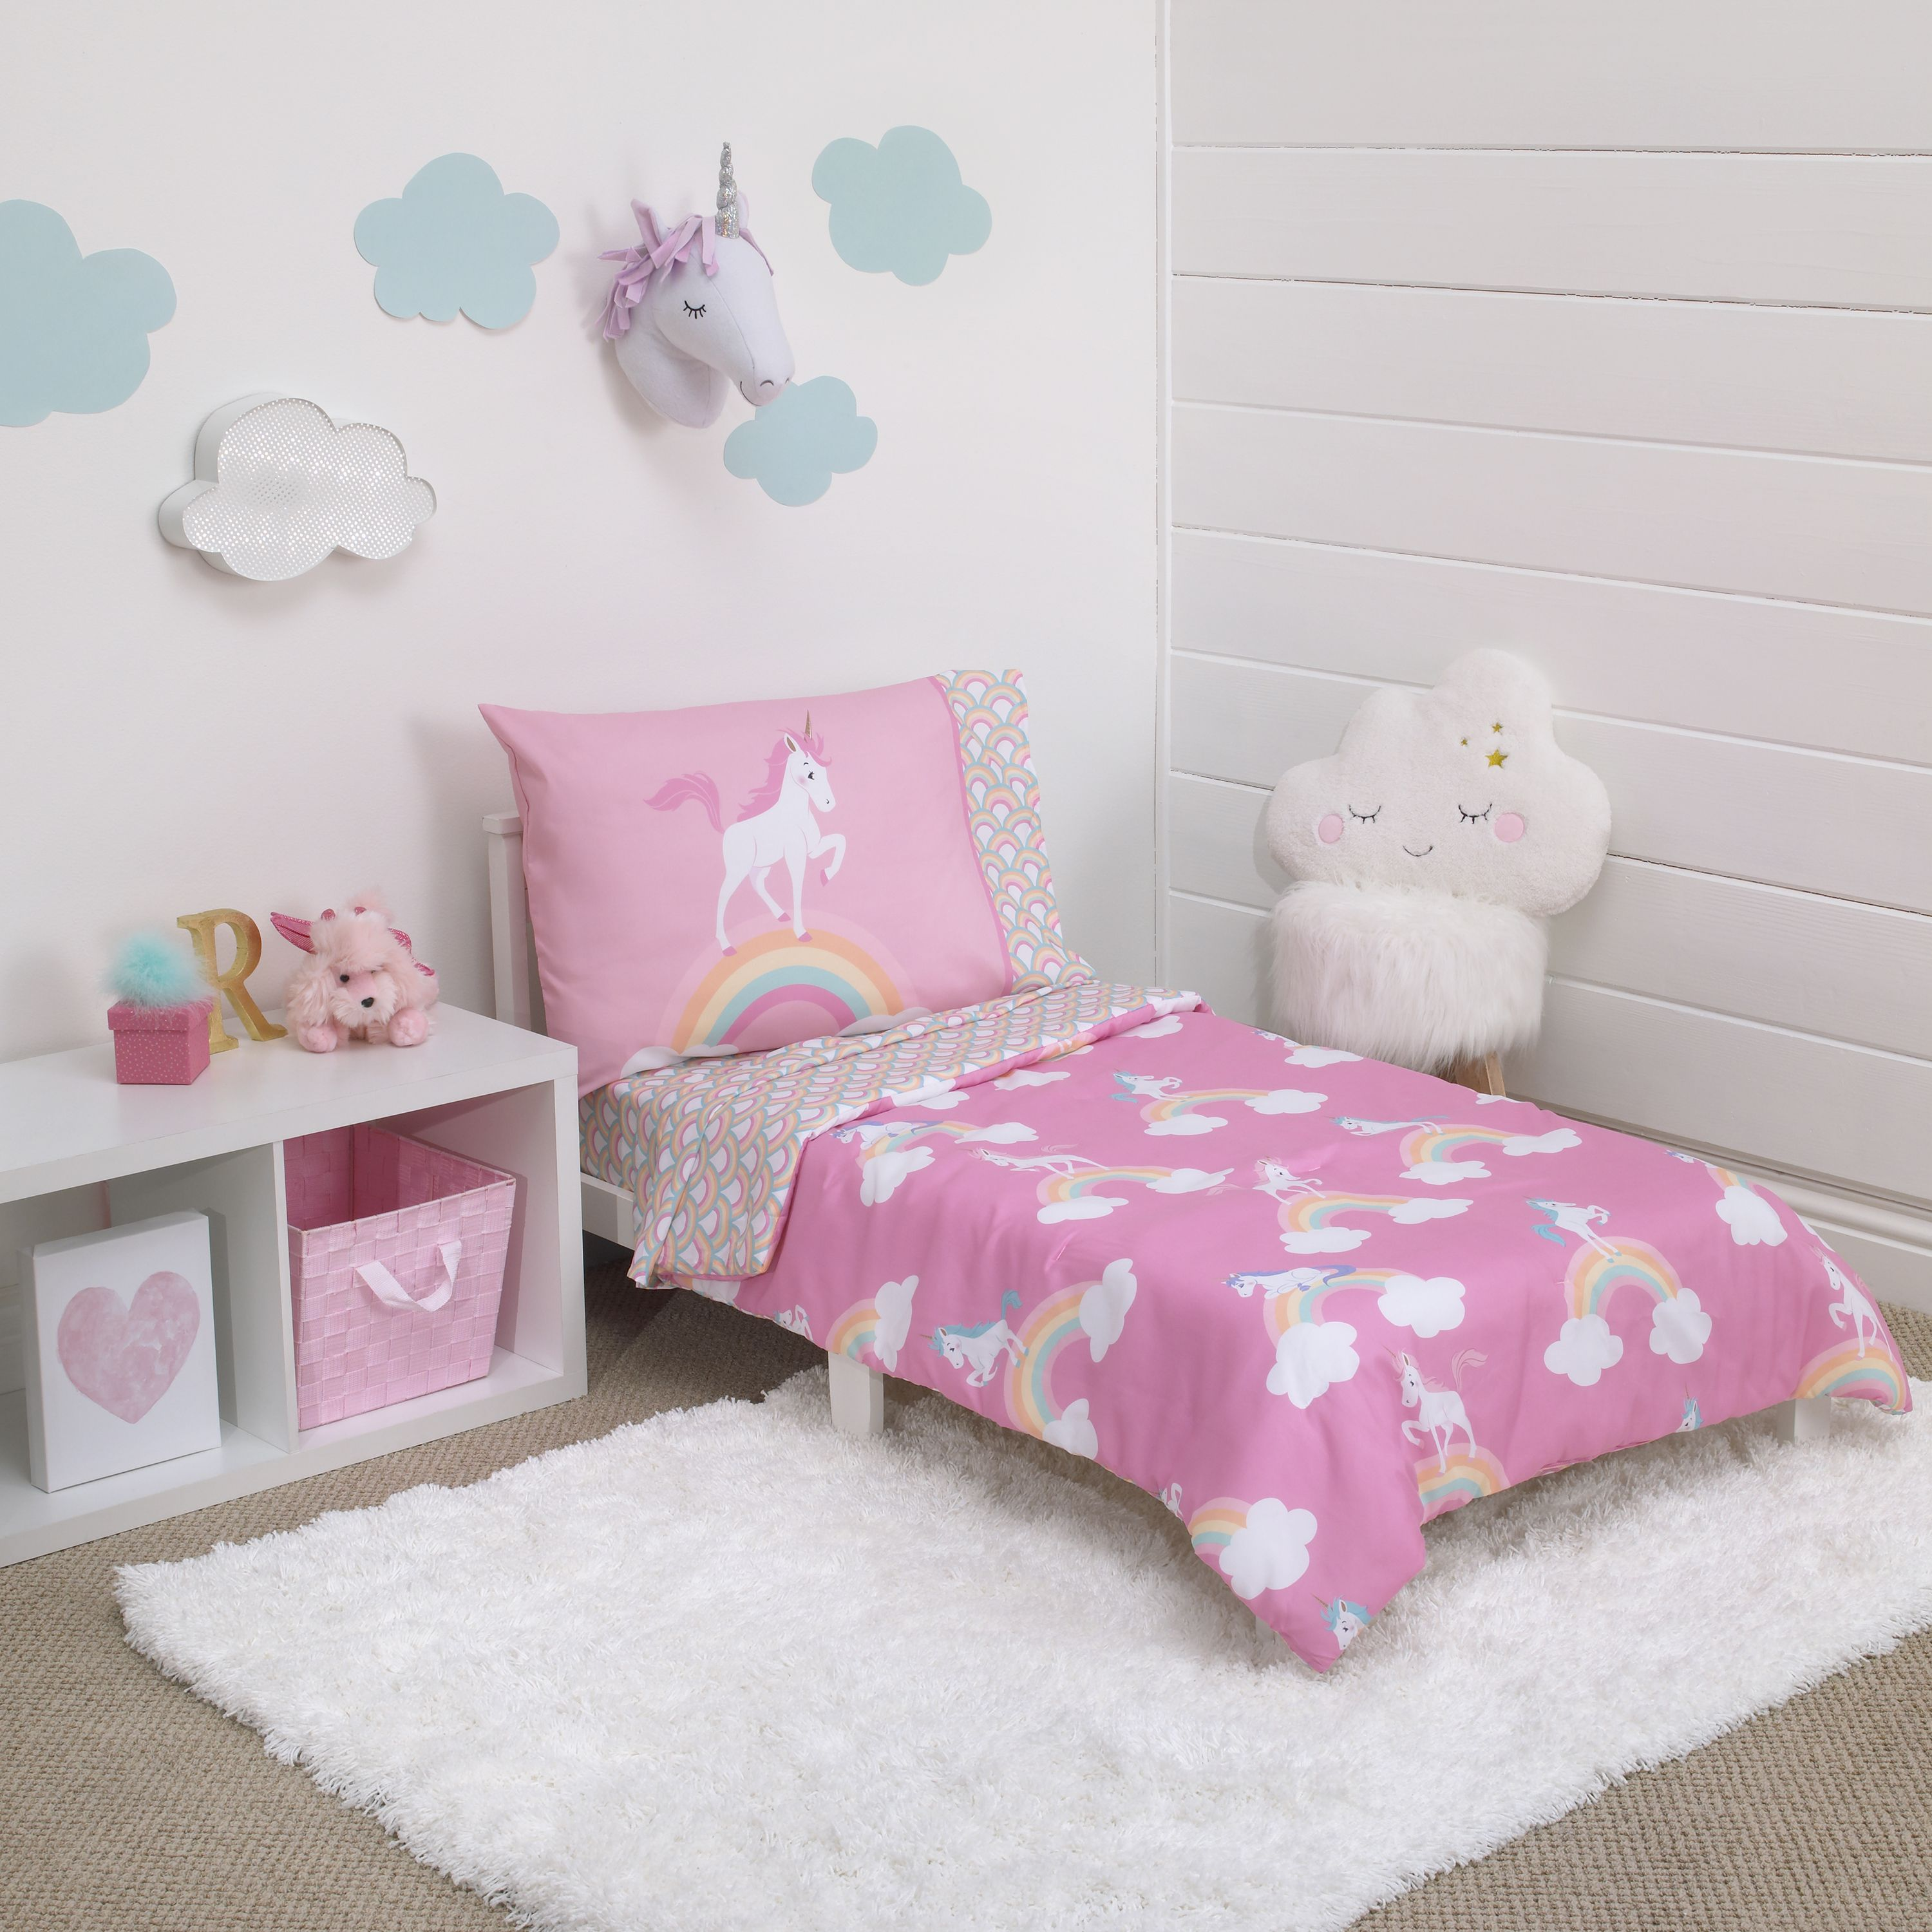 Little Tikes Rainbows & Unicorns 4 Piece Toddler Bedding Set, Pink and White